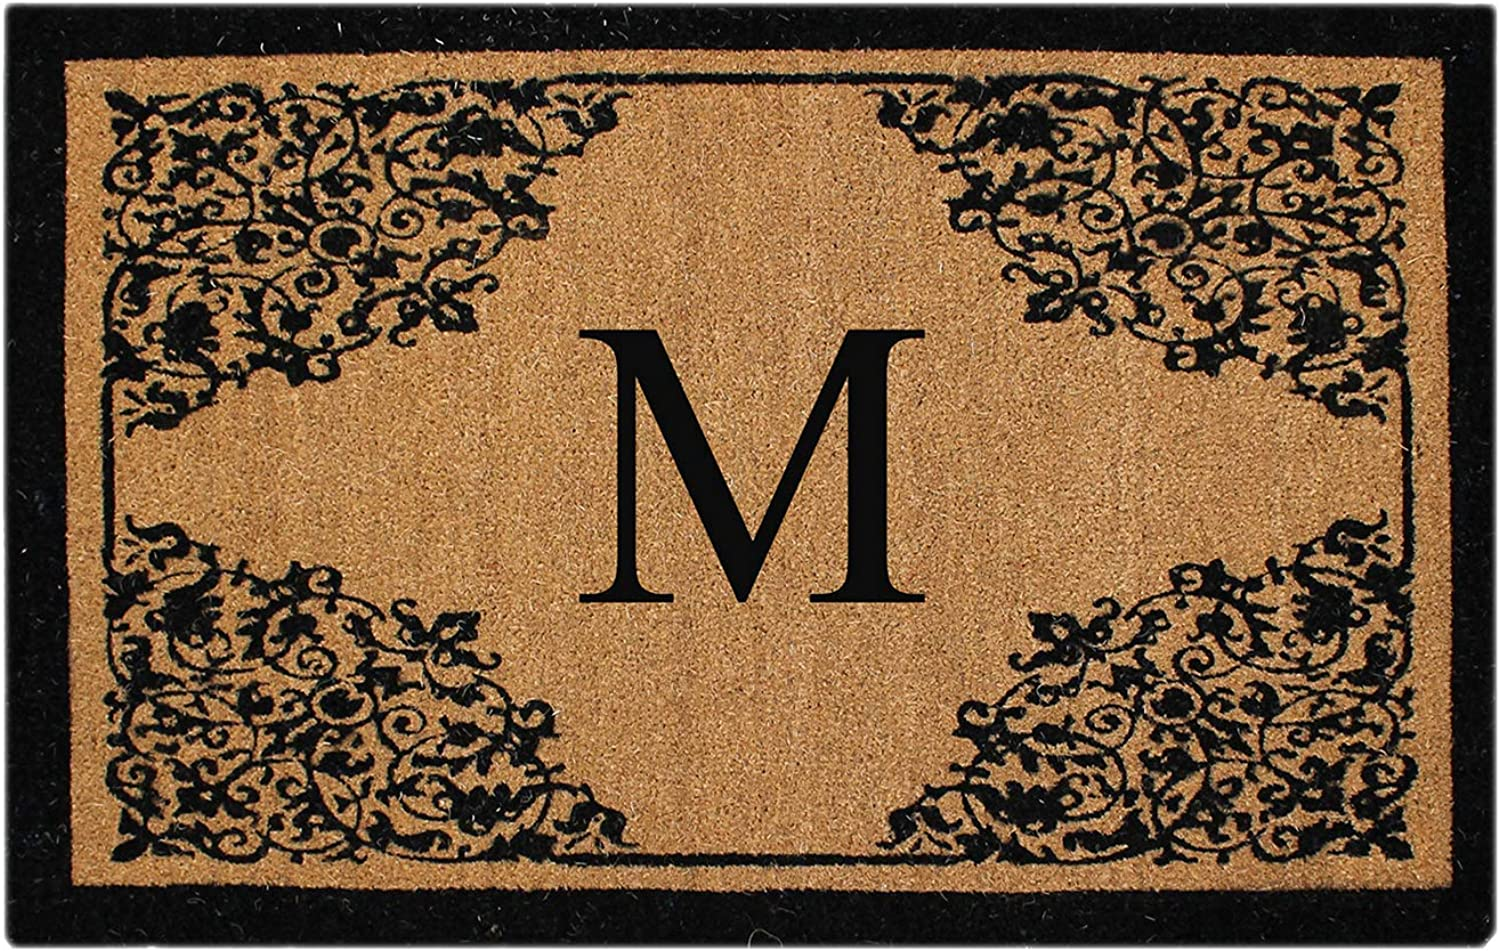 A1 HOME COLLECTIONS PT4013-MA1HC First Impression Monogram Hand Crafted by Artisans Floral Large Doormat, 30  x 48 , Beige Black